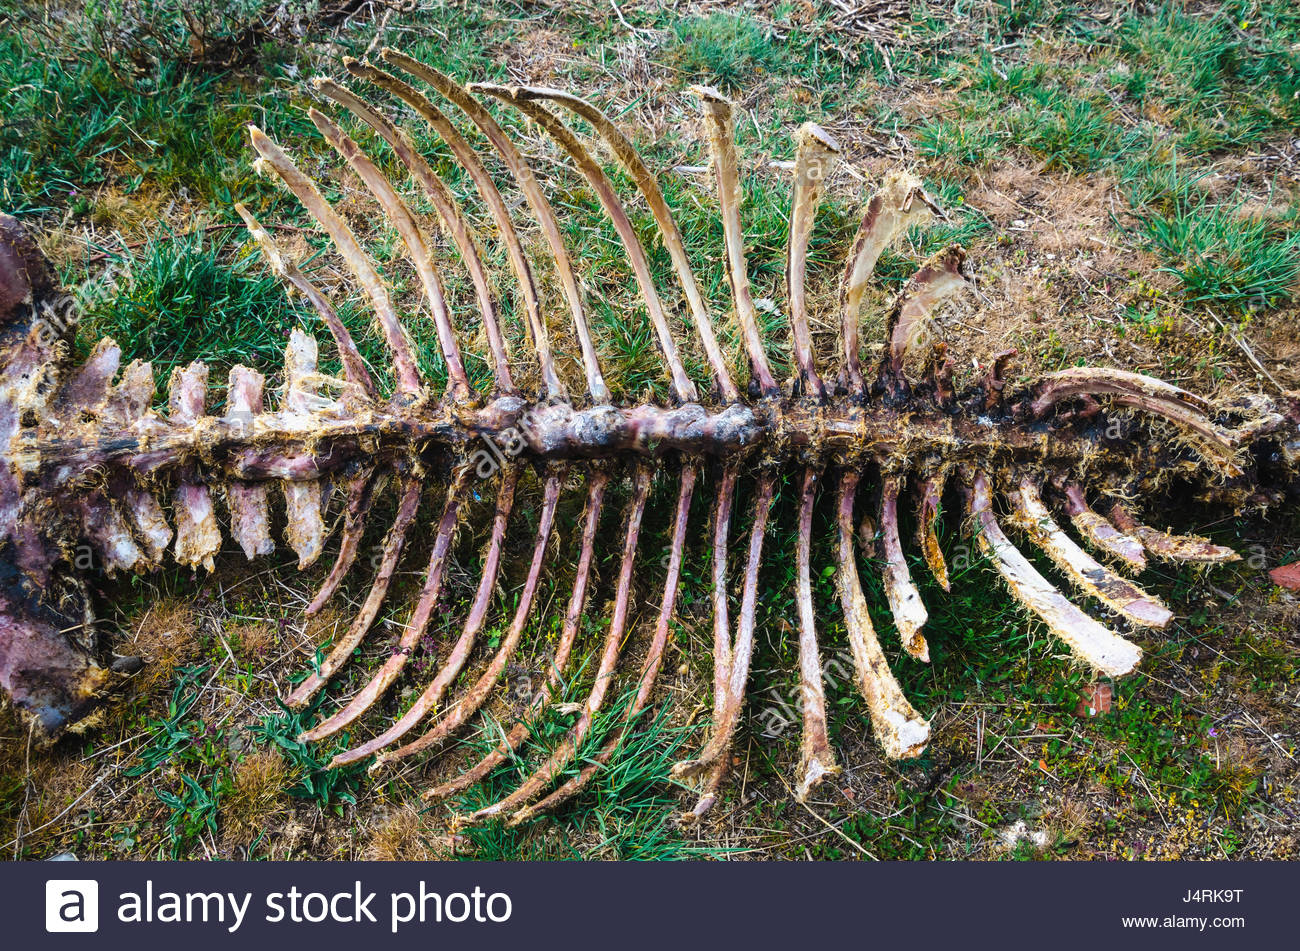 rotten animal bones on the ground. skeleton. Carrion. Food for scavengers - Stock Image